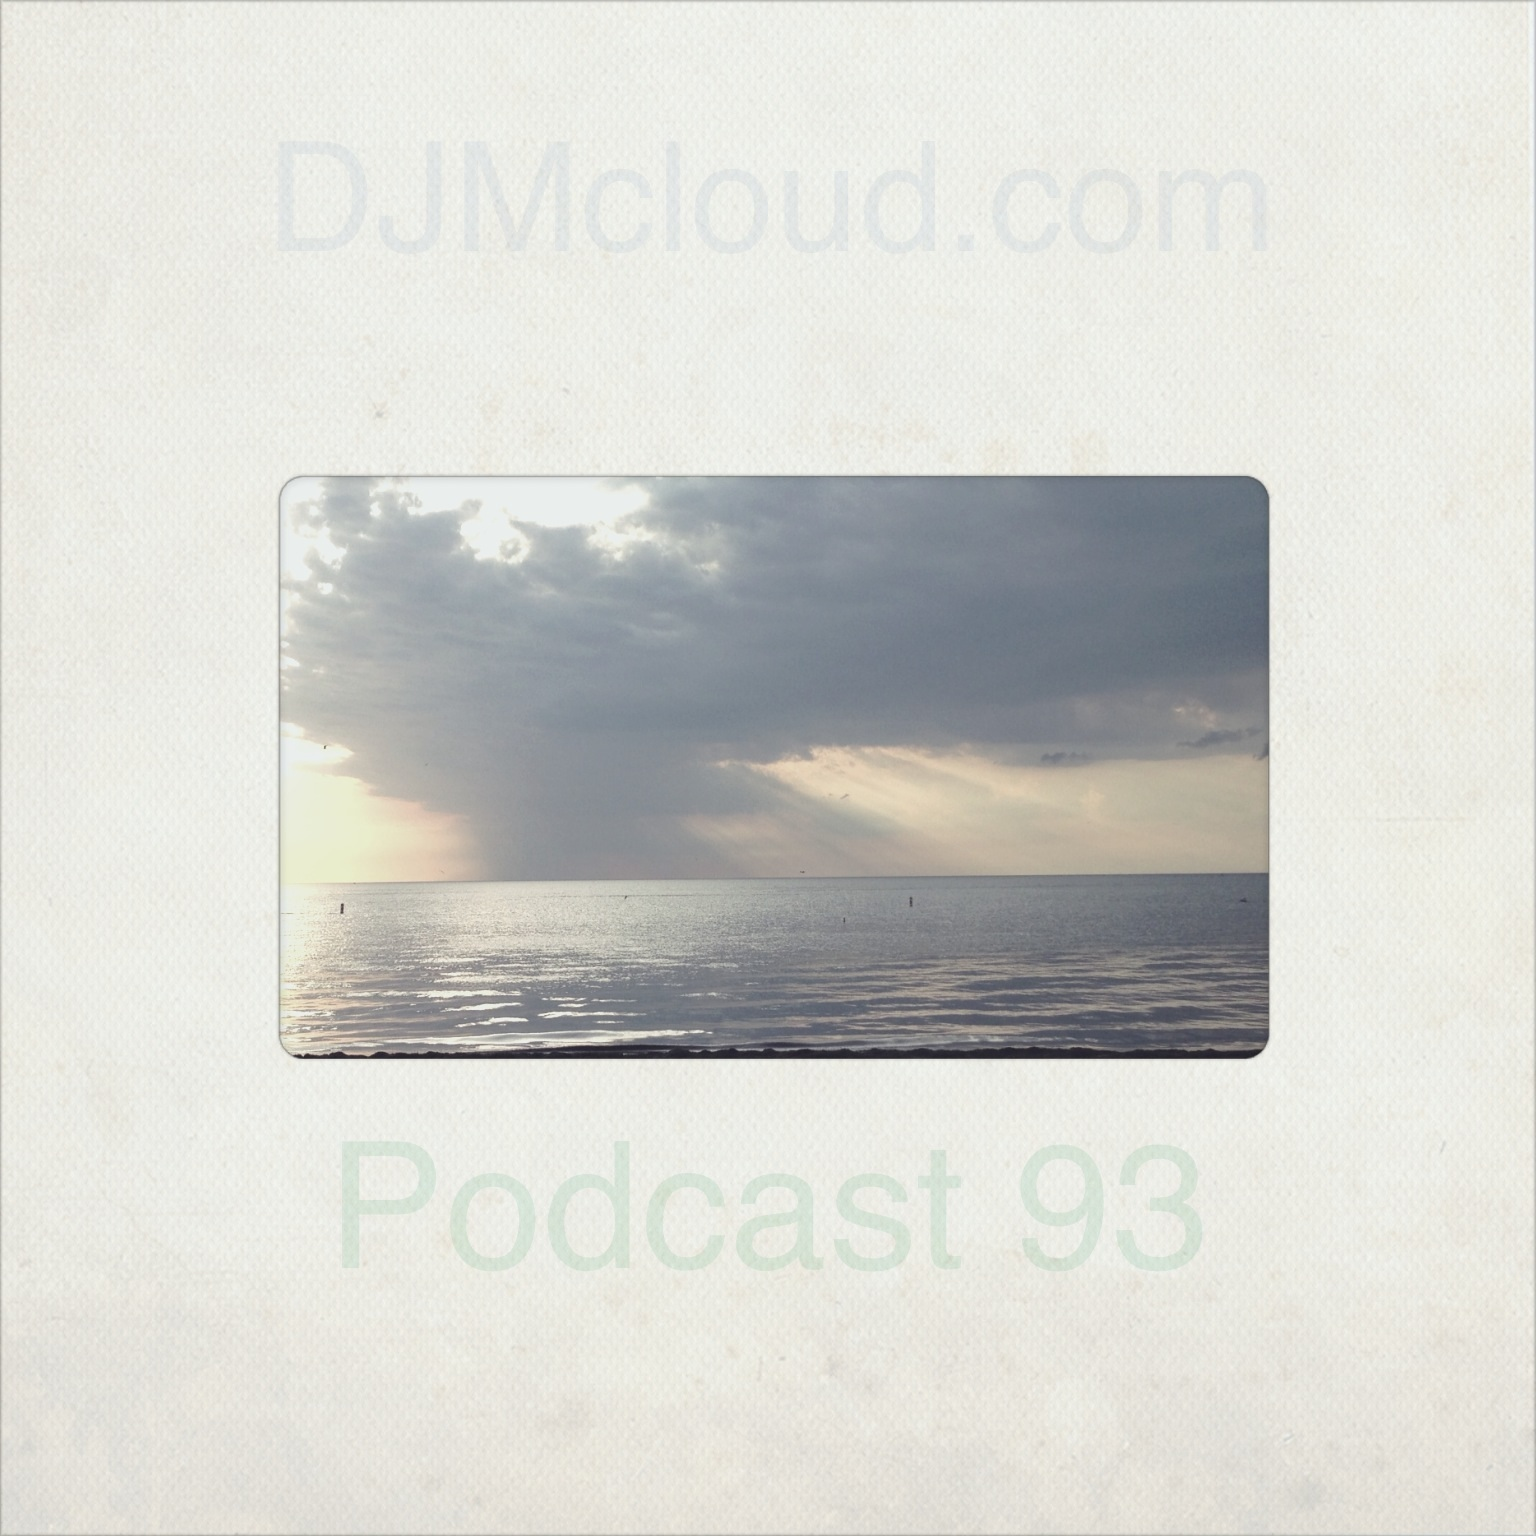 DJMcloudPodcast93artworkJune2013